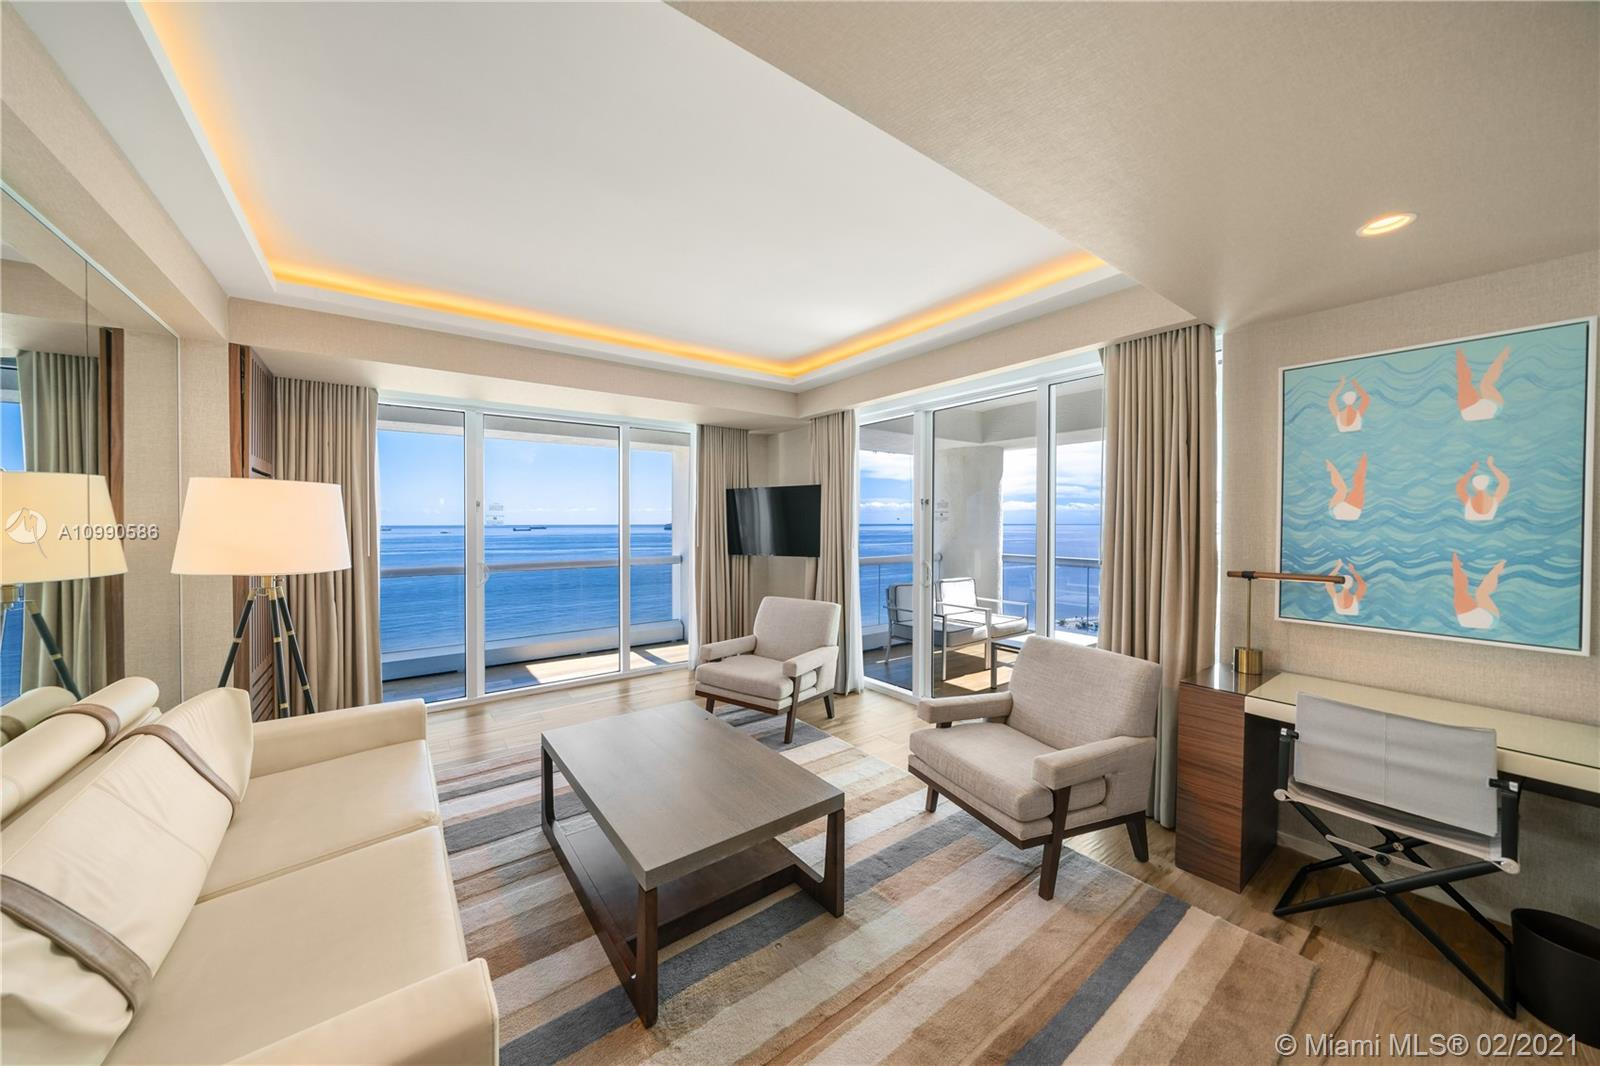 551 N Fort Lauderdale Beach Blvd #h1414 Property Photo